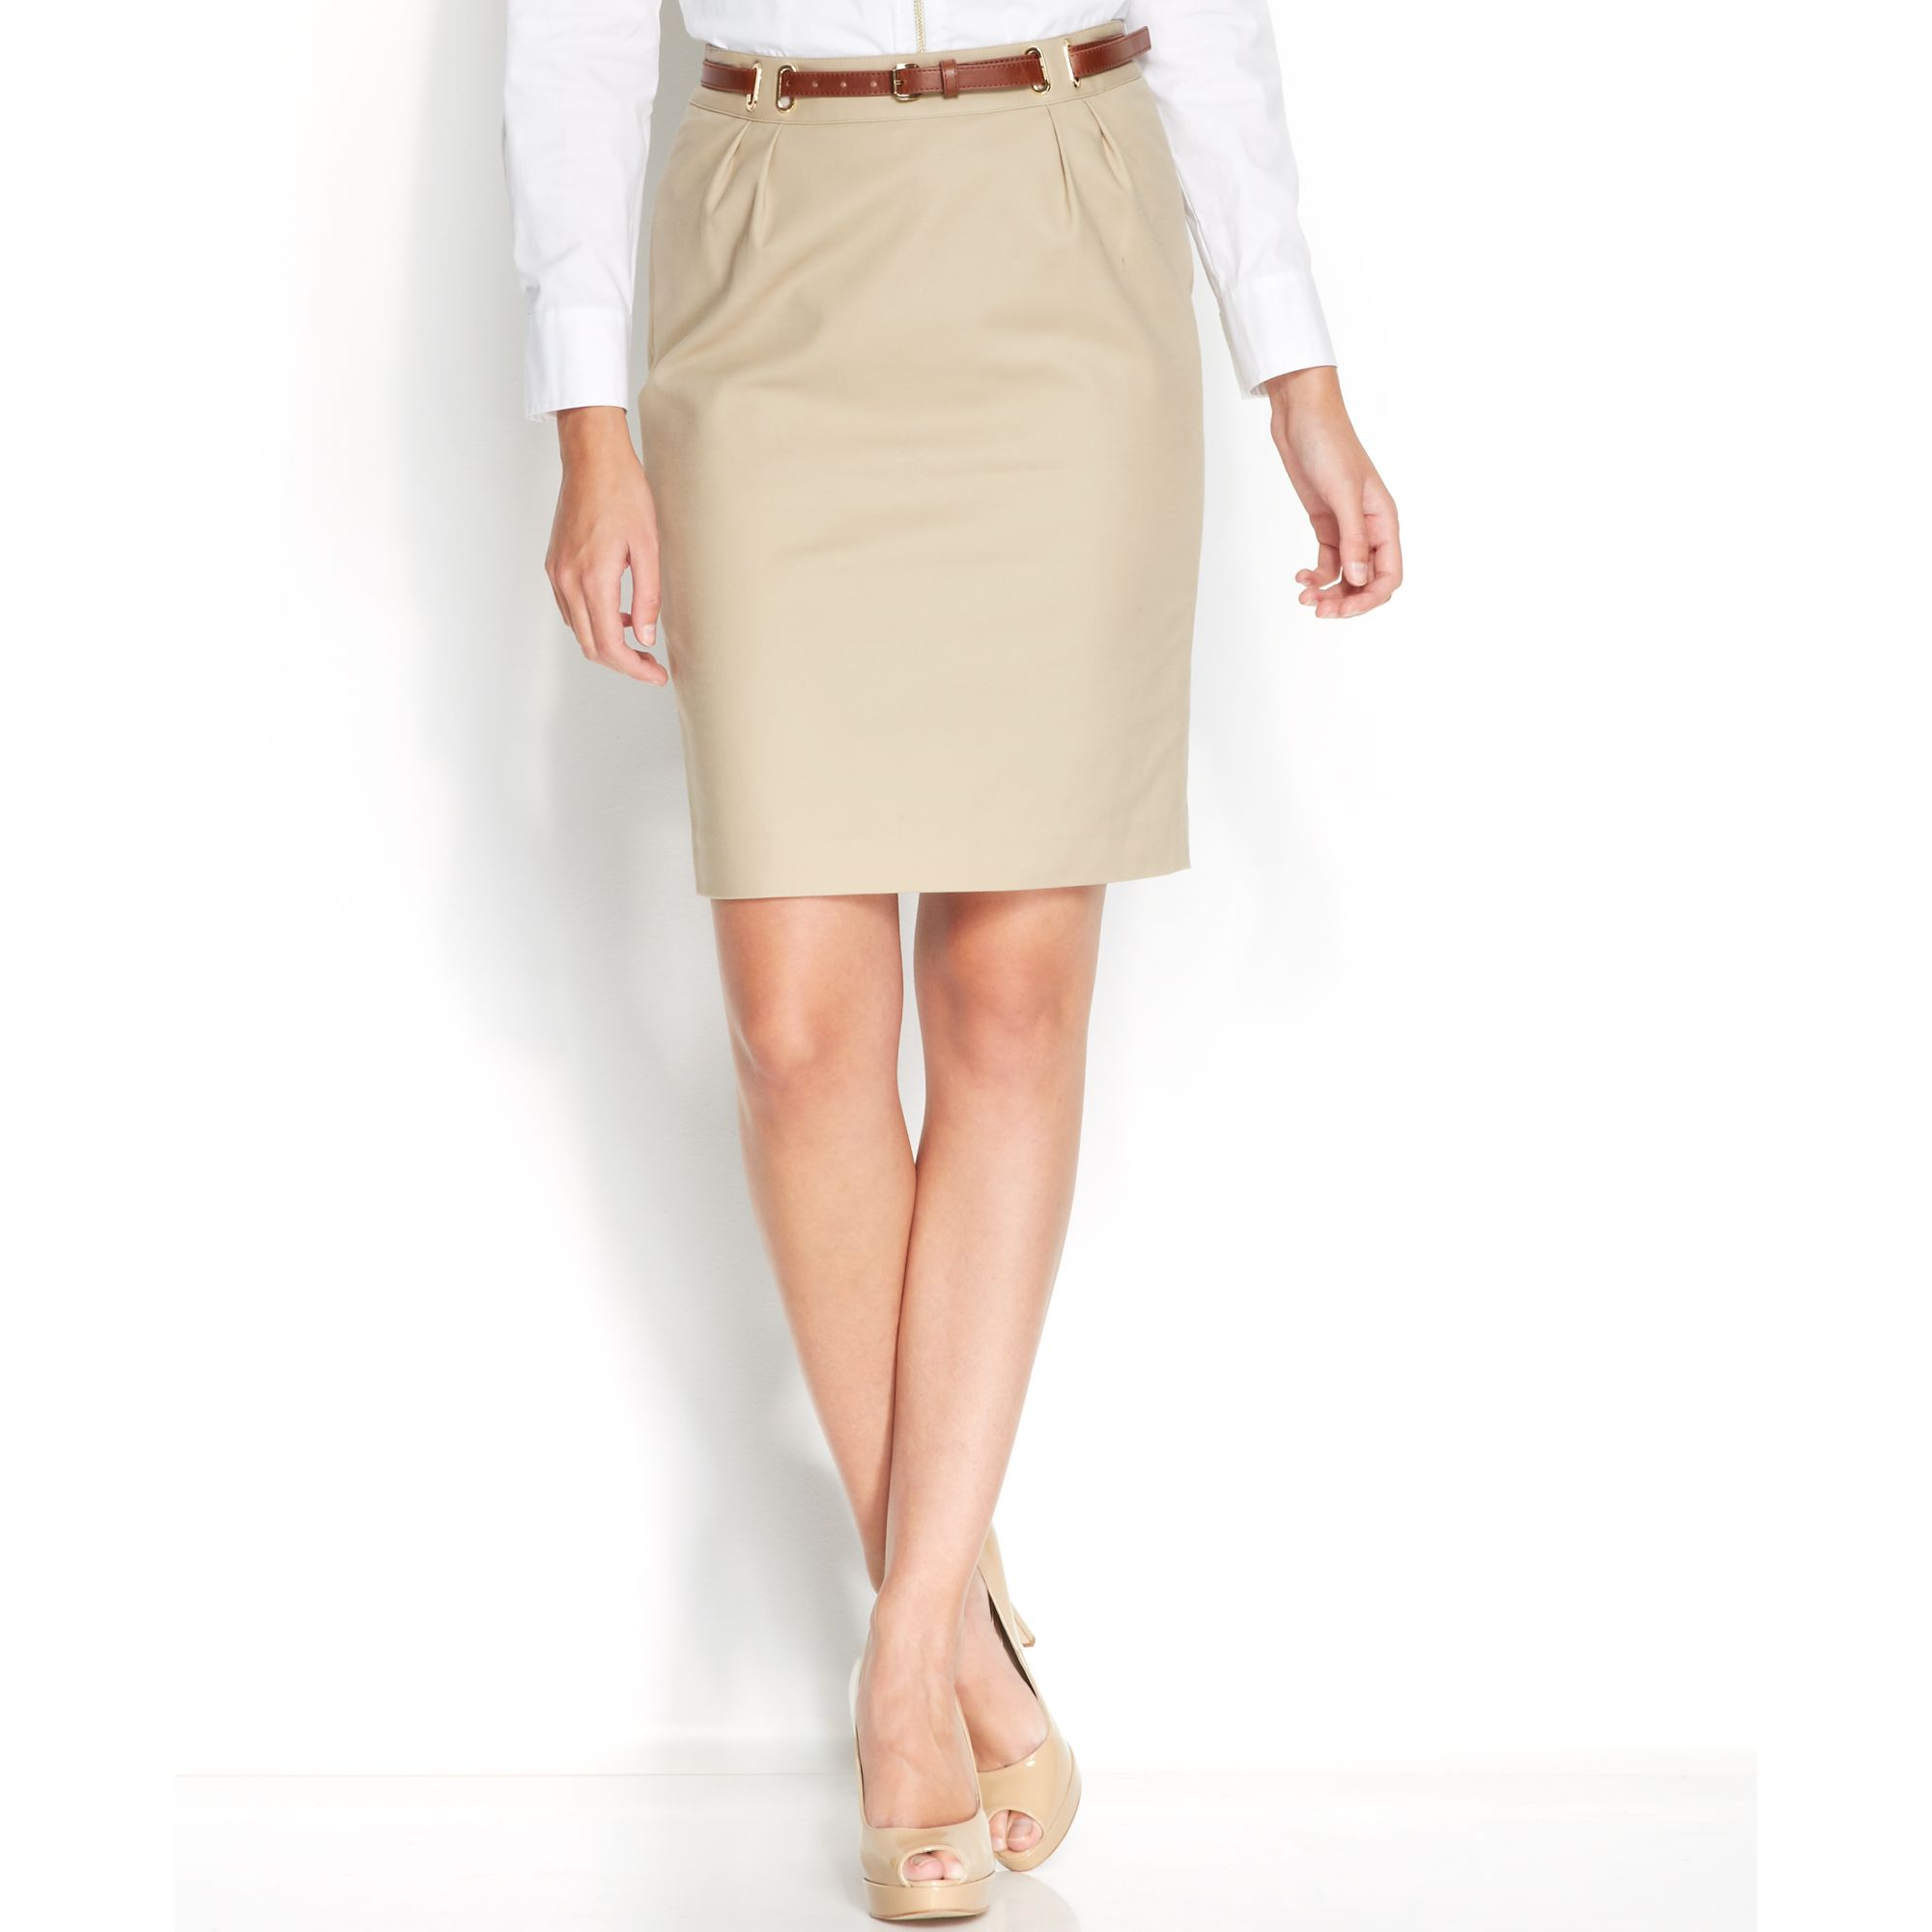 Michael kors Belted Hardware Pencil Skirt in Natural | Lyst